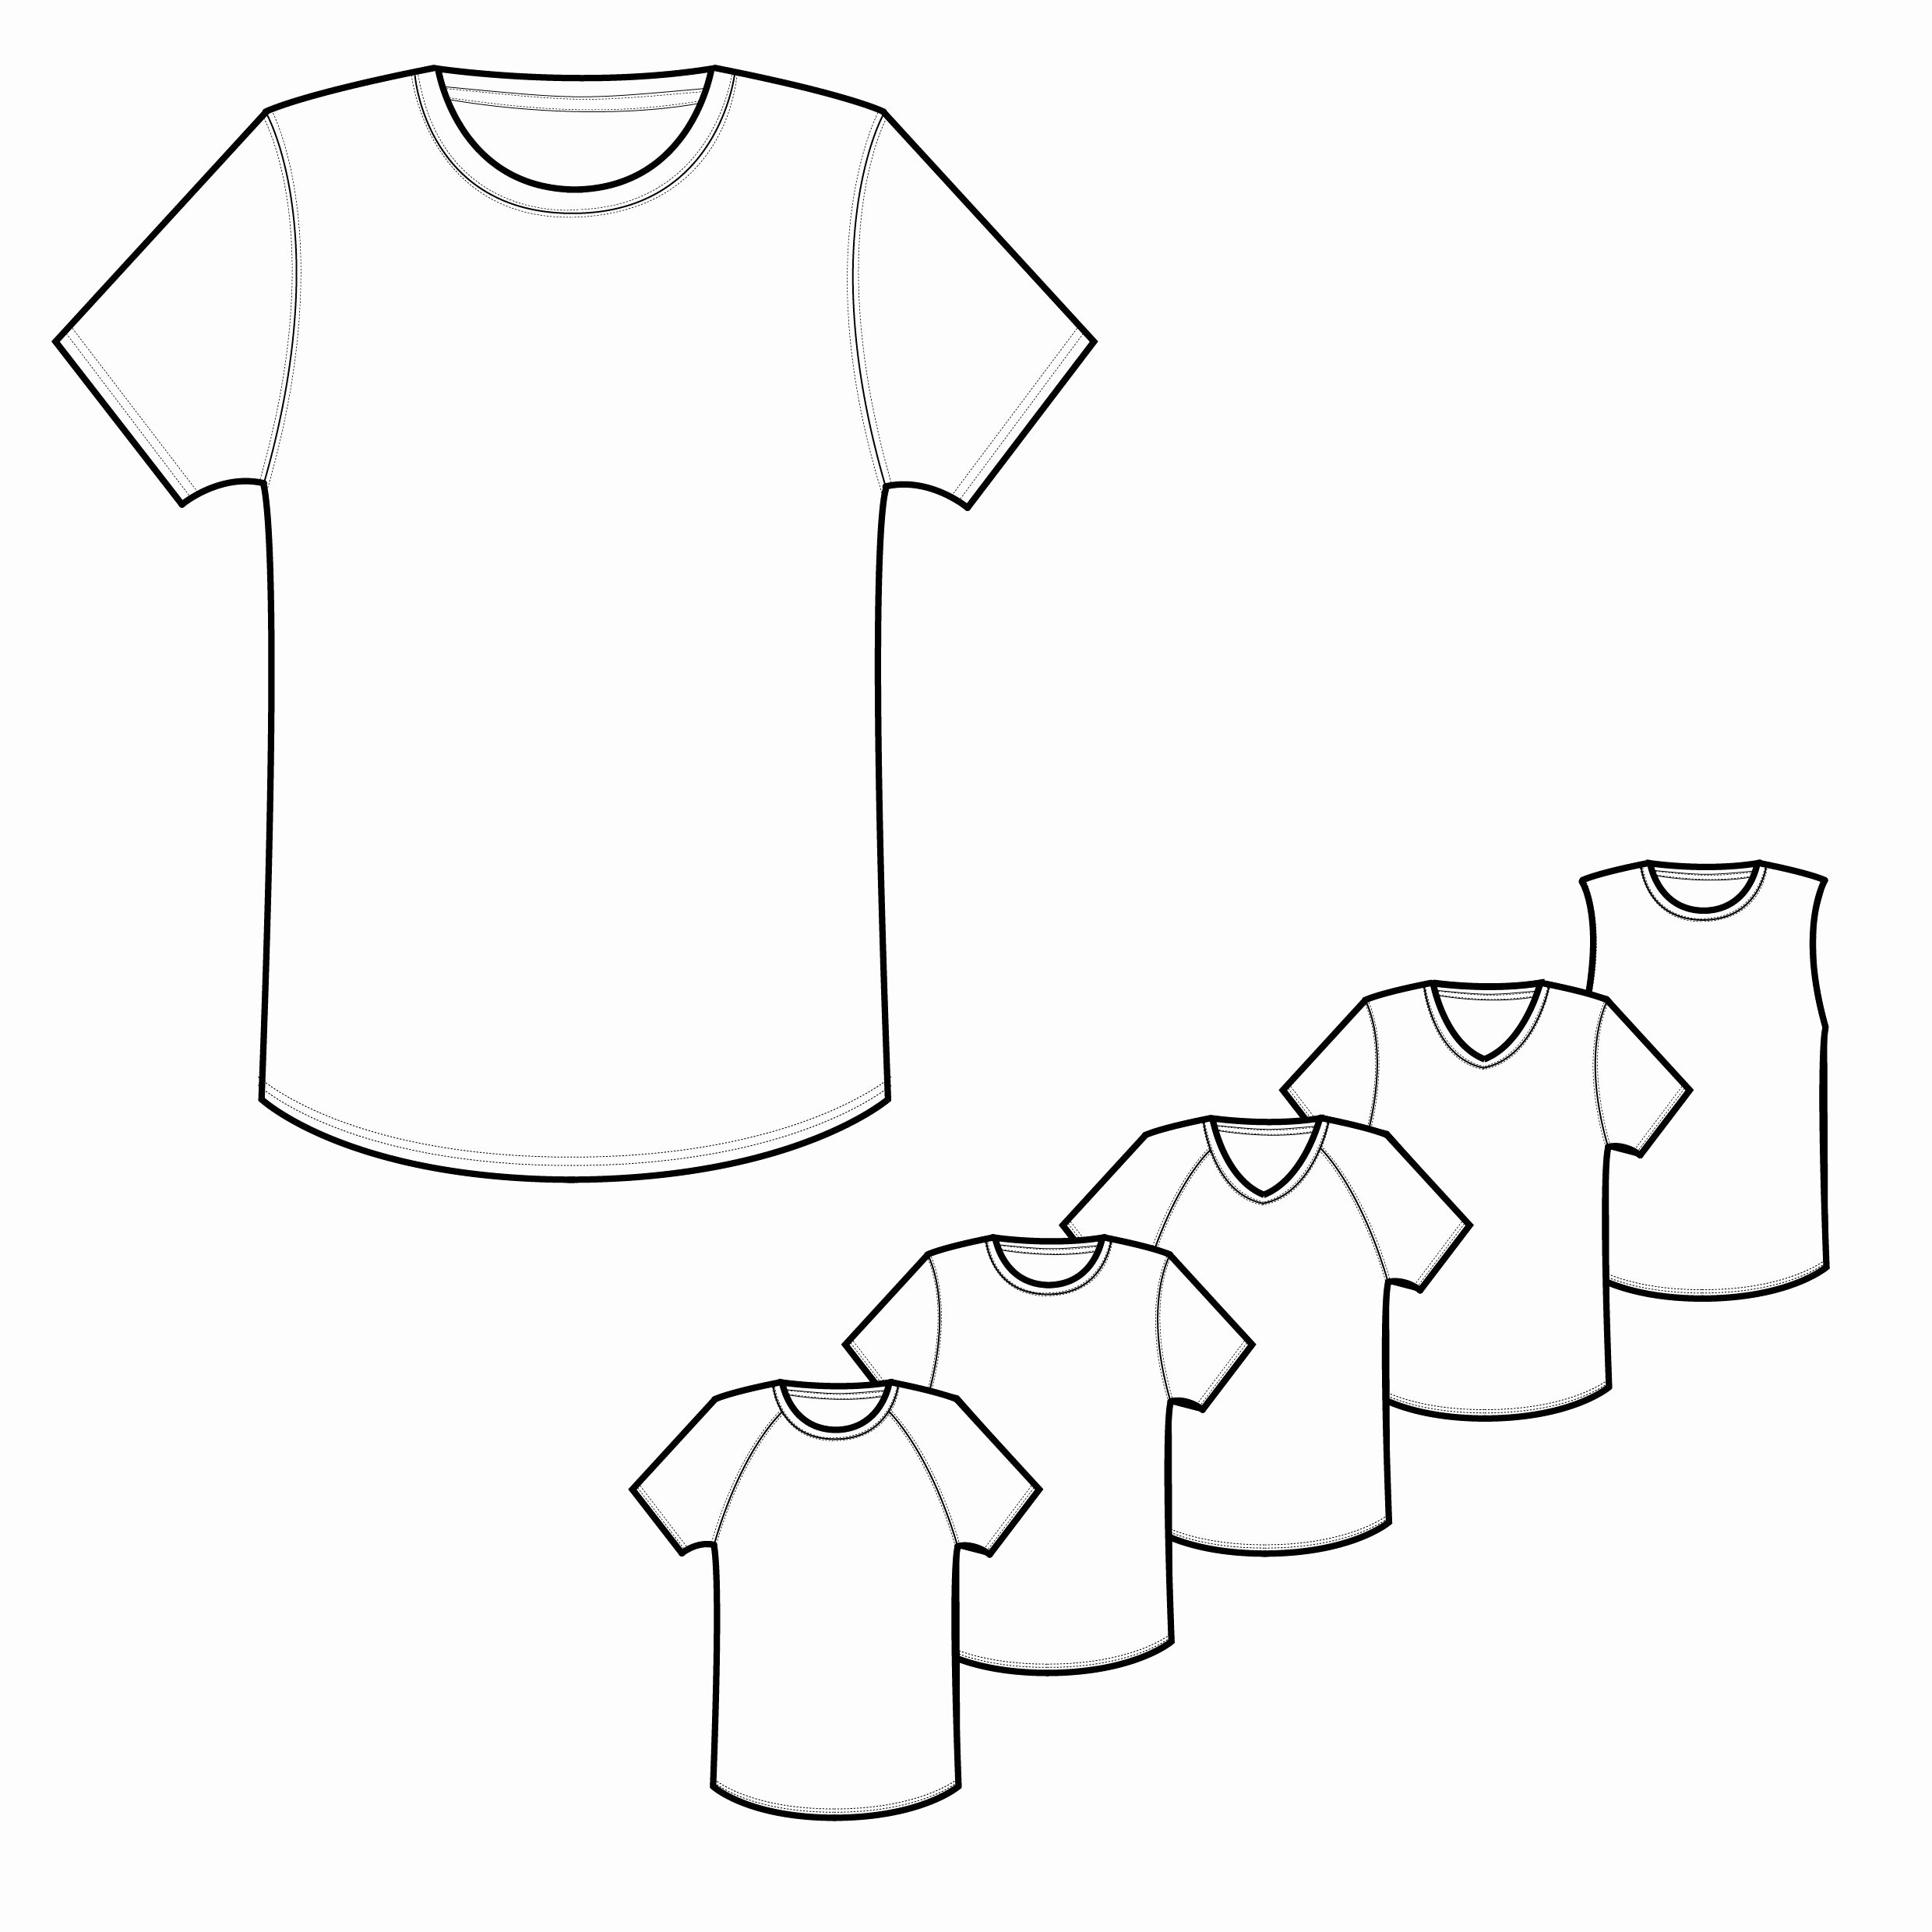 T-shirt Drawing Fresh Mens Classic & Raglan Tee Shirt Technical Drawings